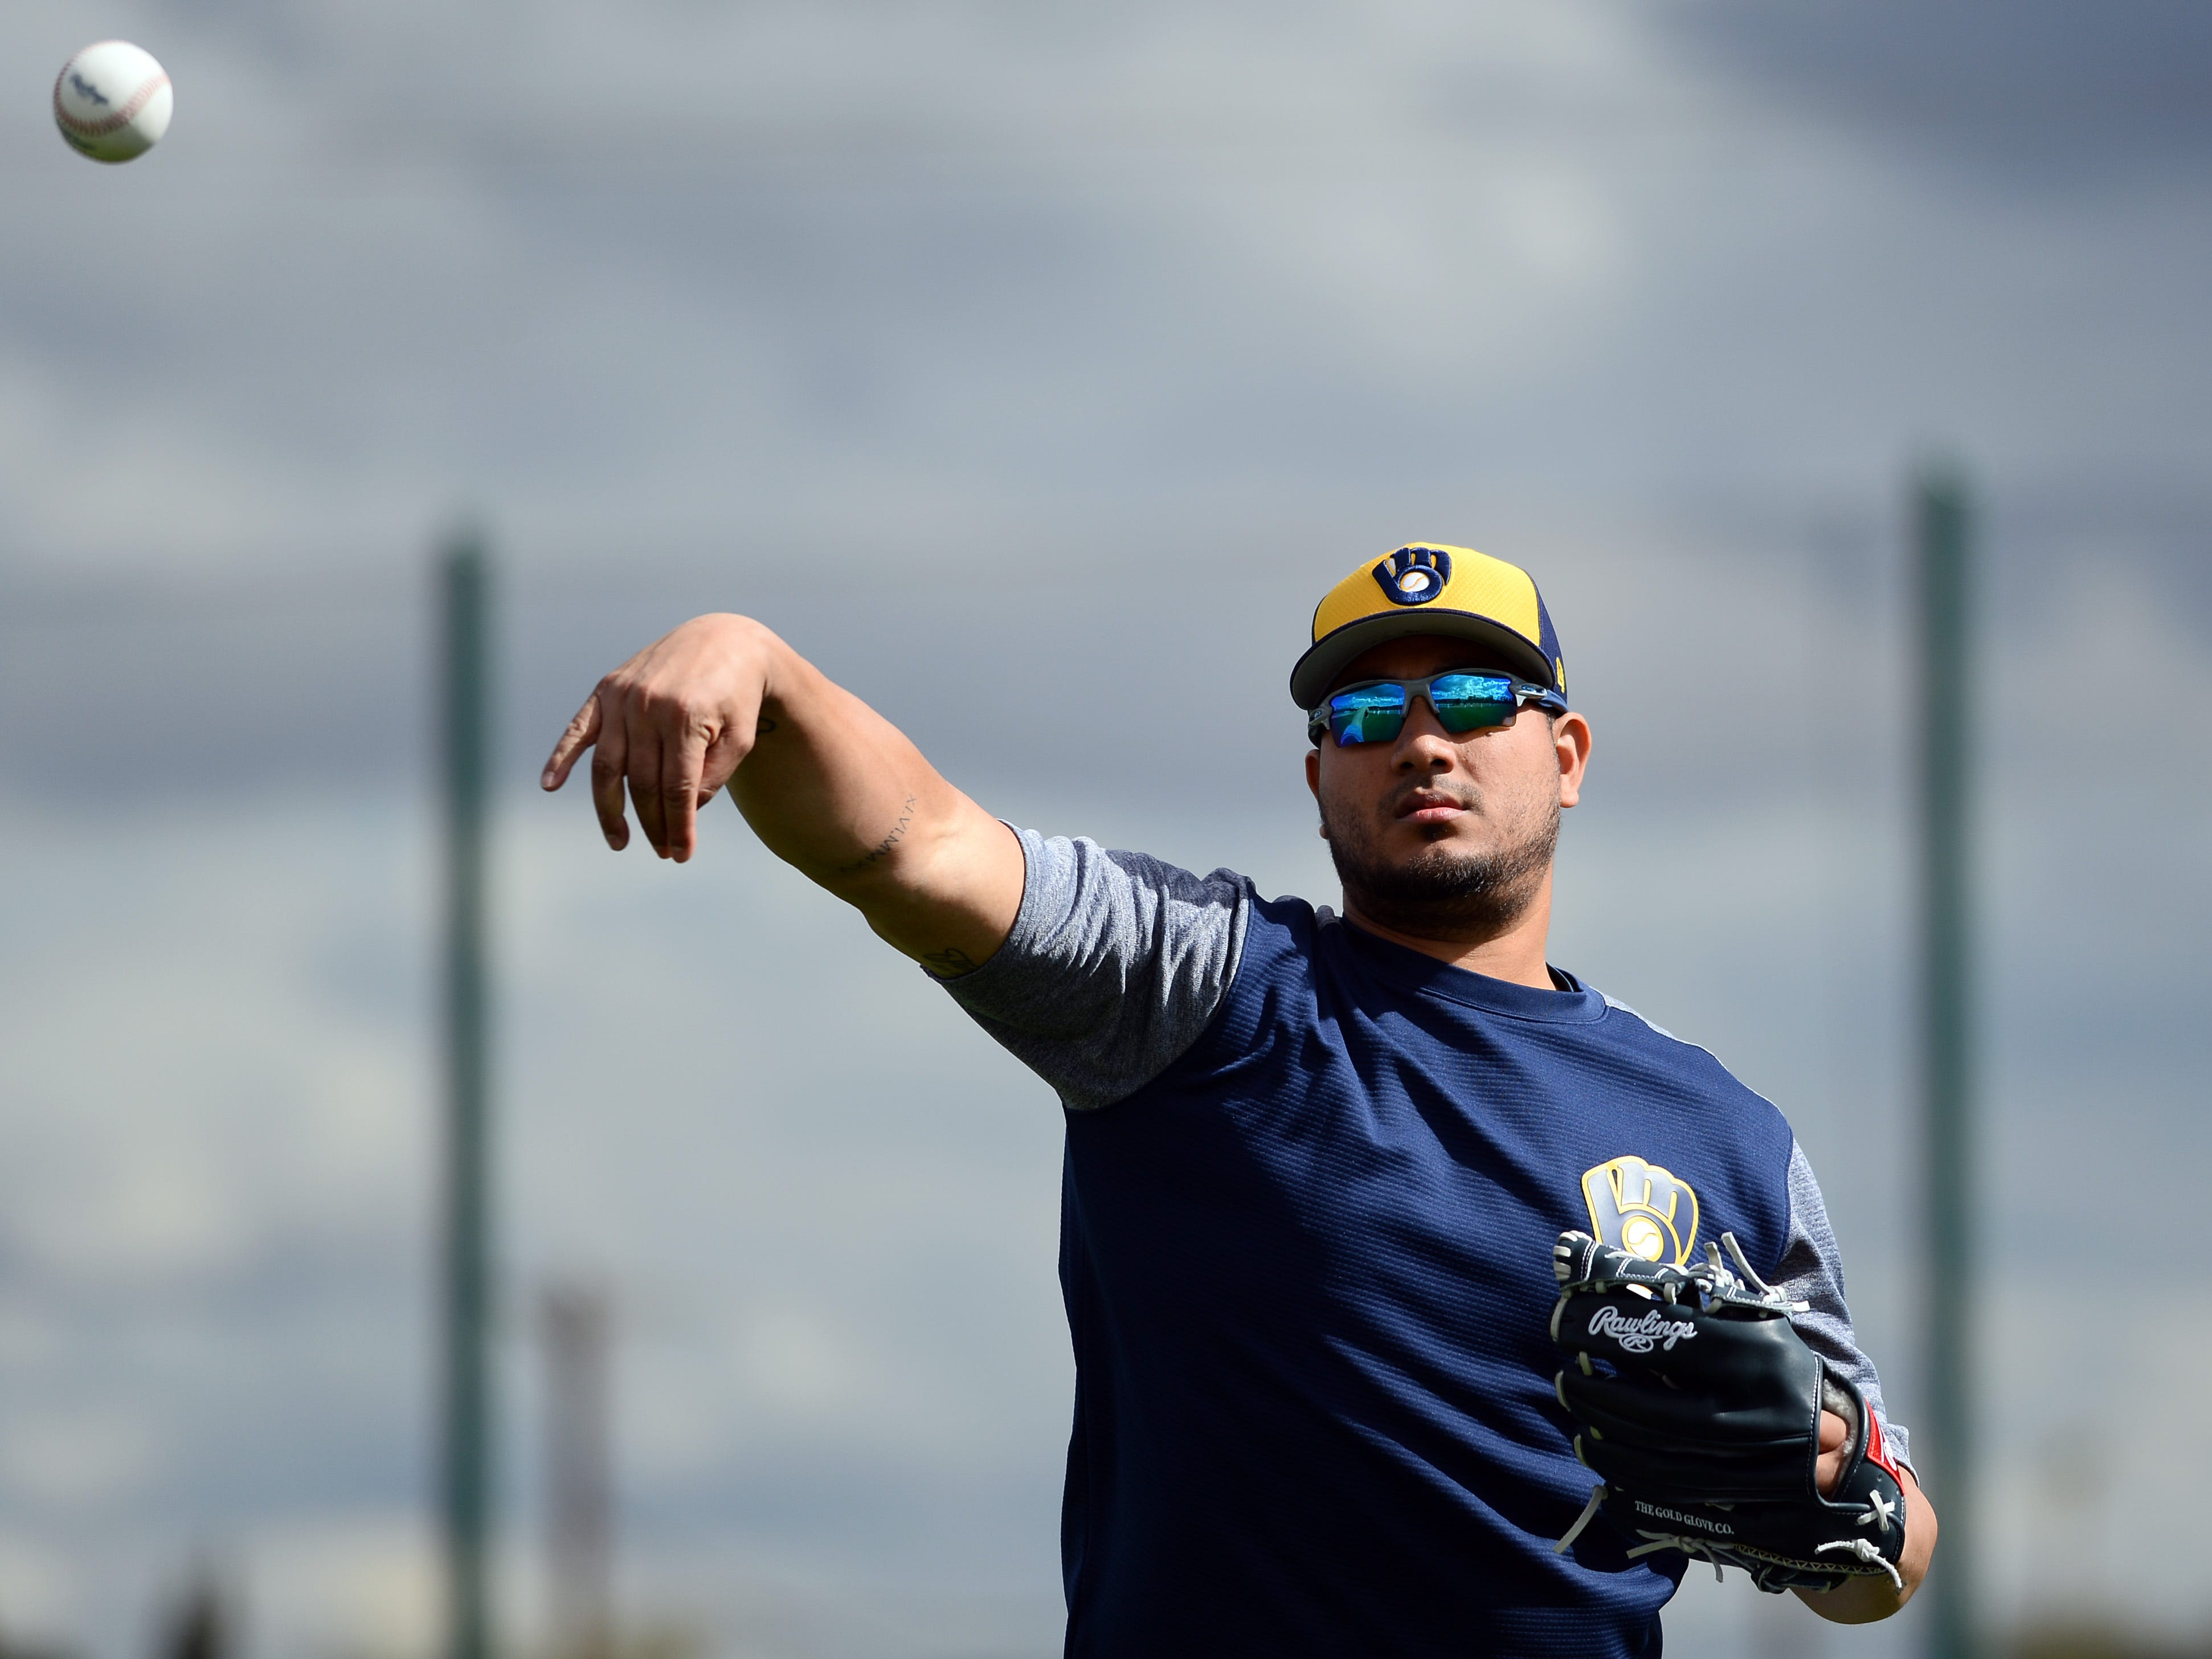 Starting pitcher Jhoulys Chacin takes part in drills on Saturday.